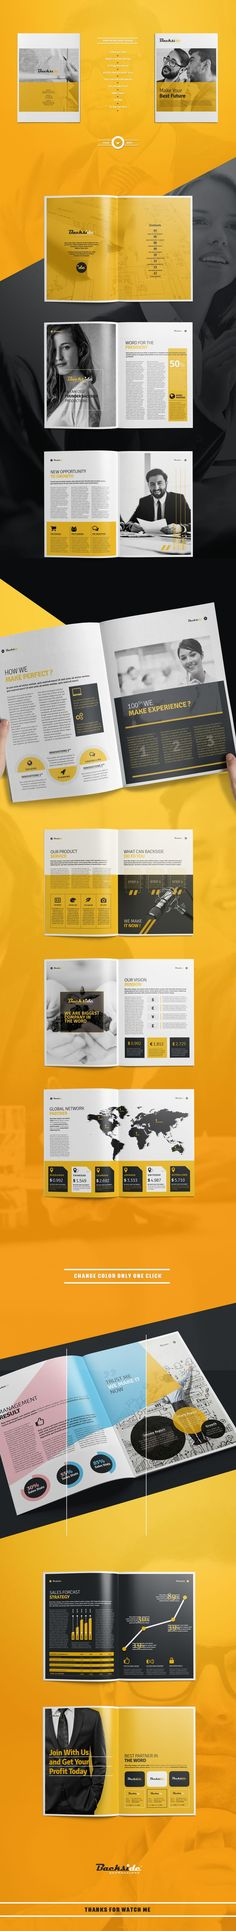 brochure, croporate, corporate brochure, proposal, annual report, offer, financial, clean, modern, brief, book, catalog, flat, brochure brochure, a4 brochure, typoedition, us letter, us letter size, business, corporate, brochure, croporate, corporate broc…. If you like UX, design, or design thinking, check out theuxblog.com